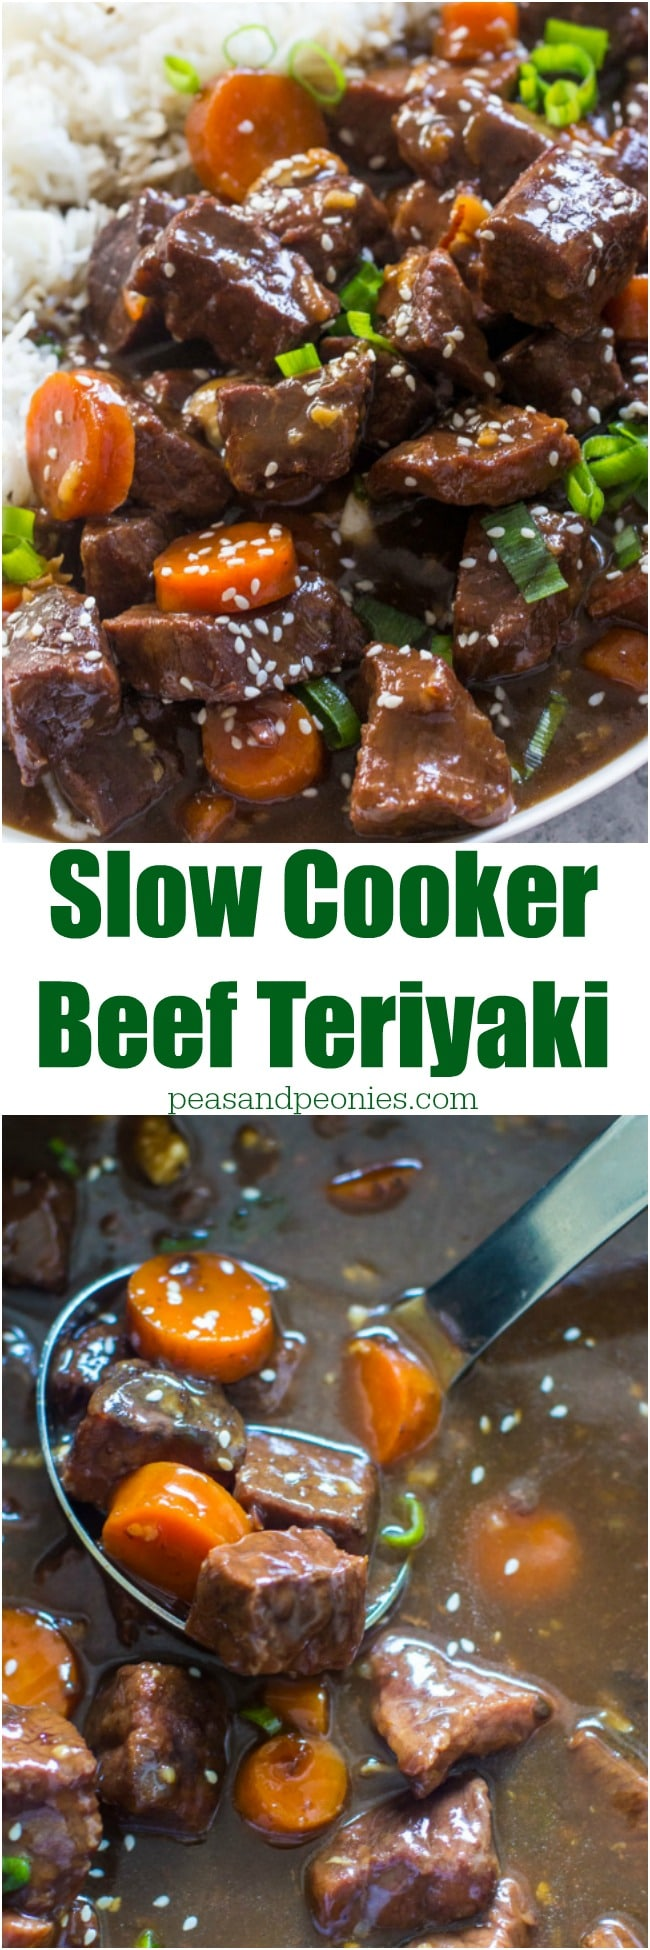 Easy to make Slow Cooker Beef Teriyaki is the perfect weeknight meal. Just add all the ingredients to the crockpot and cook.